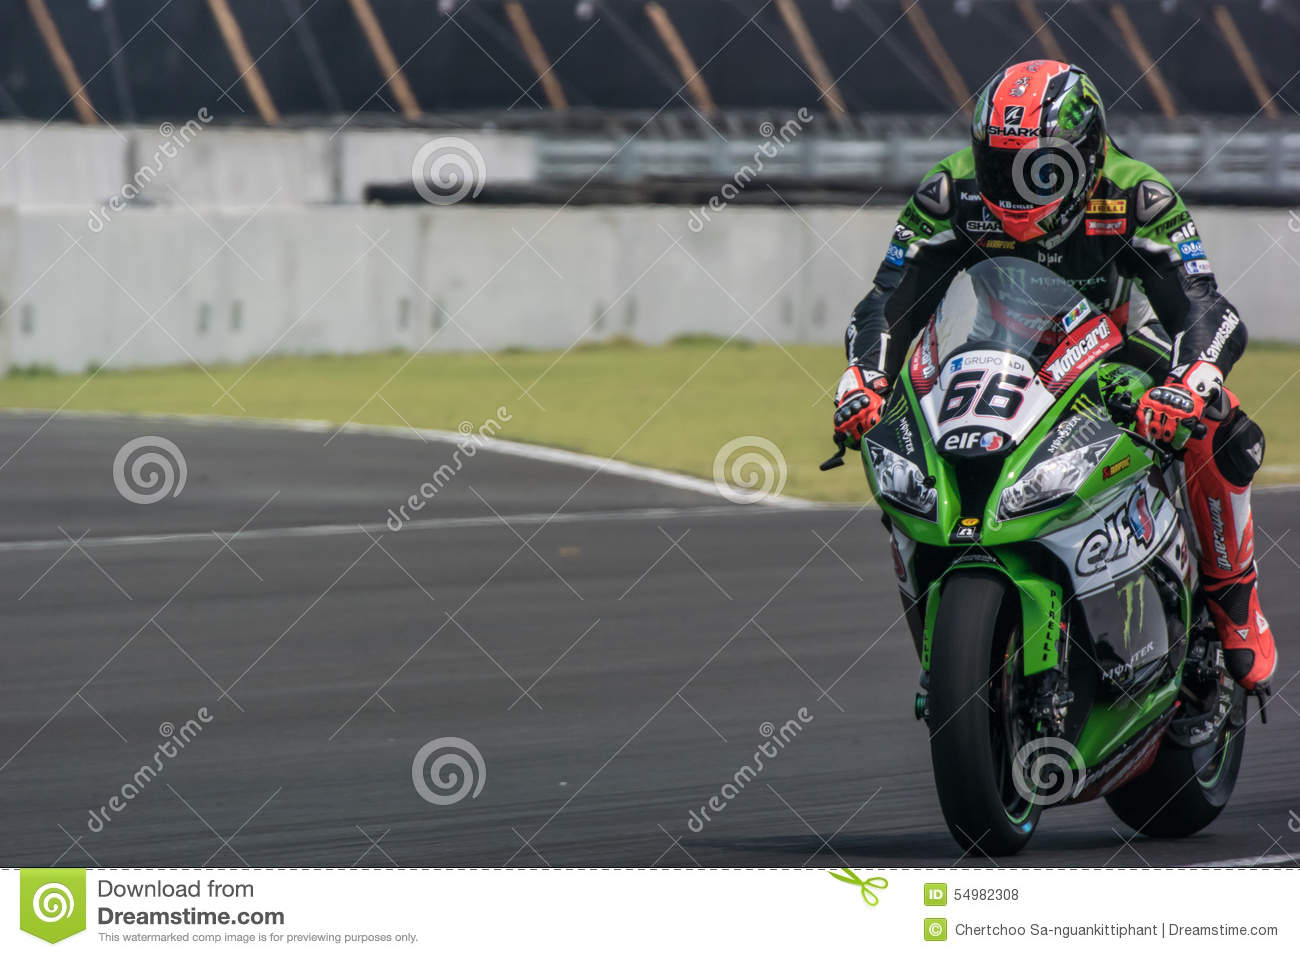 WSBK2015 - Round2 - Chang International Circuits, Buriram, Tailandia